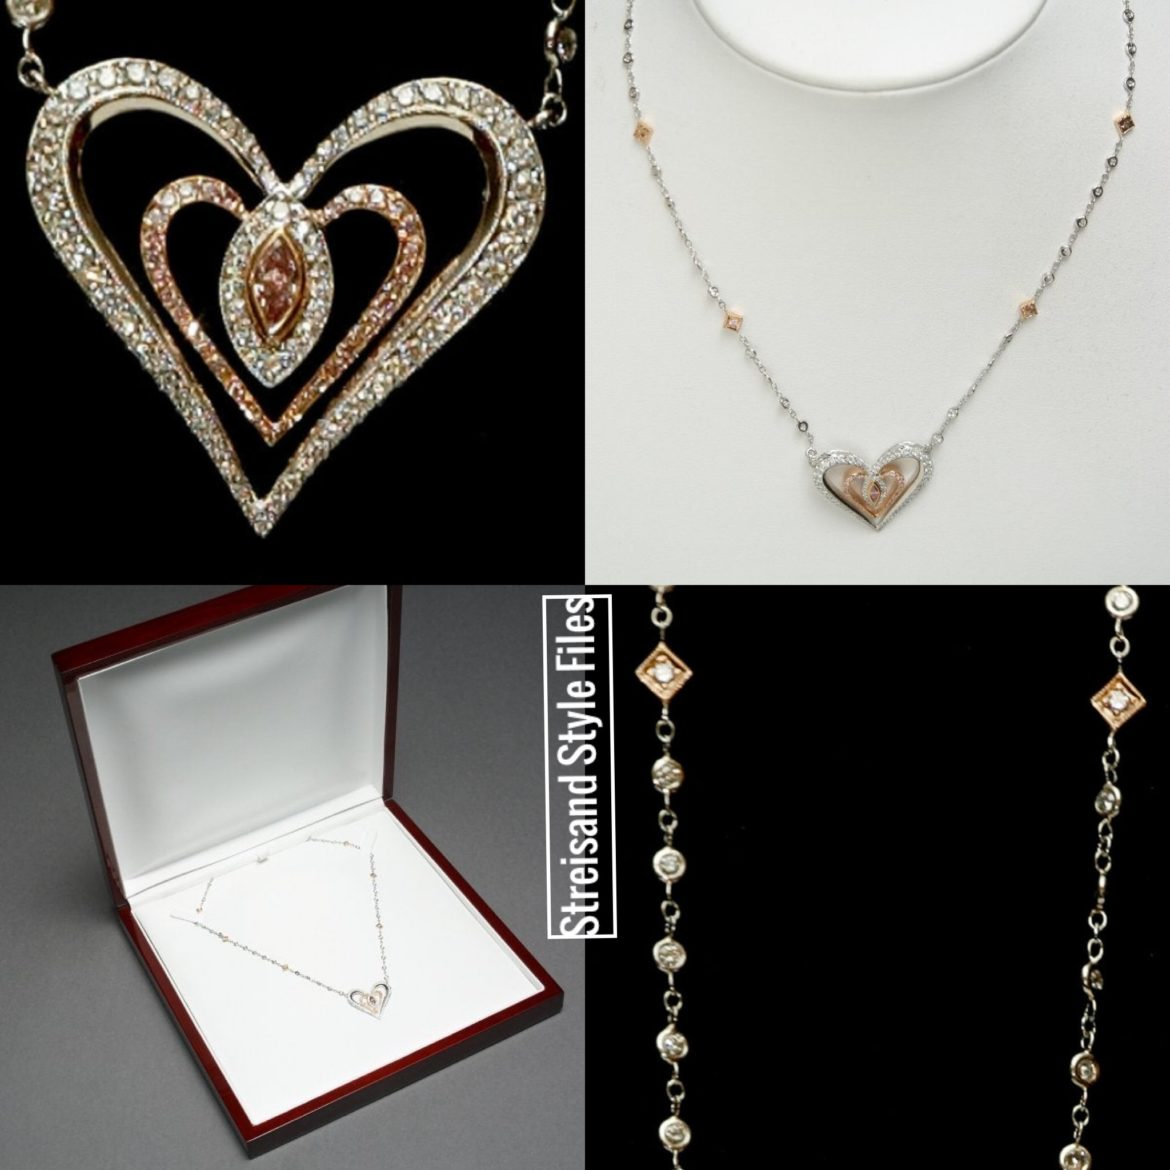 Barbra's Necklace Design For 2003's Women With Heart Auction